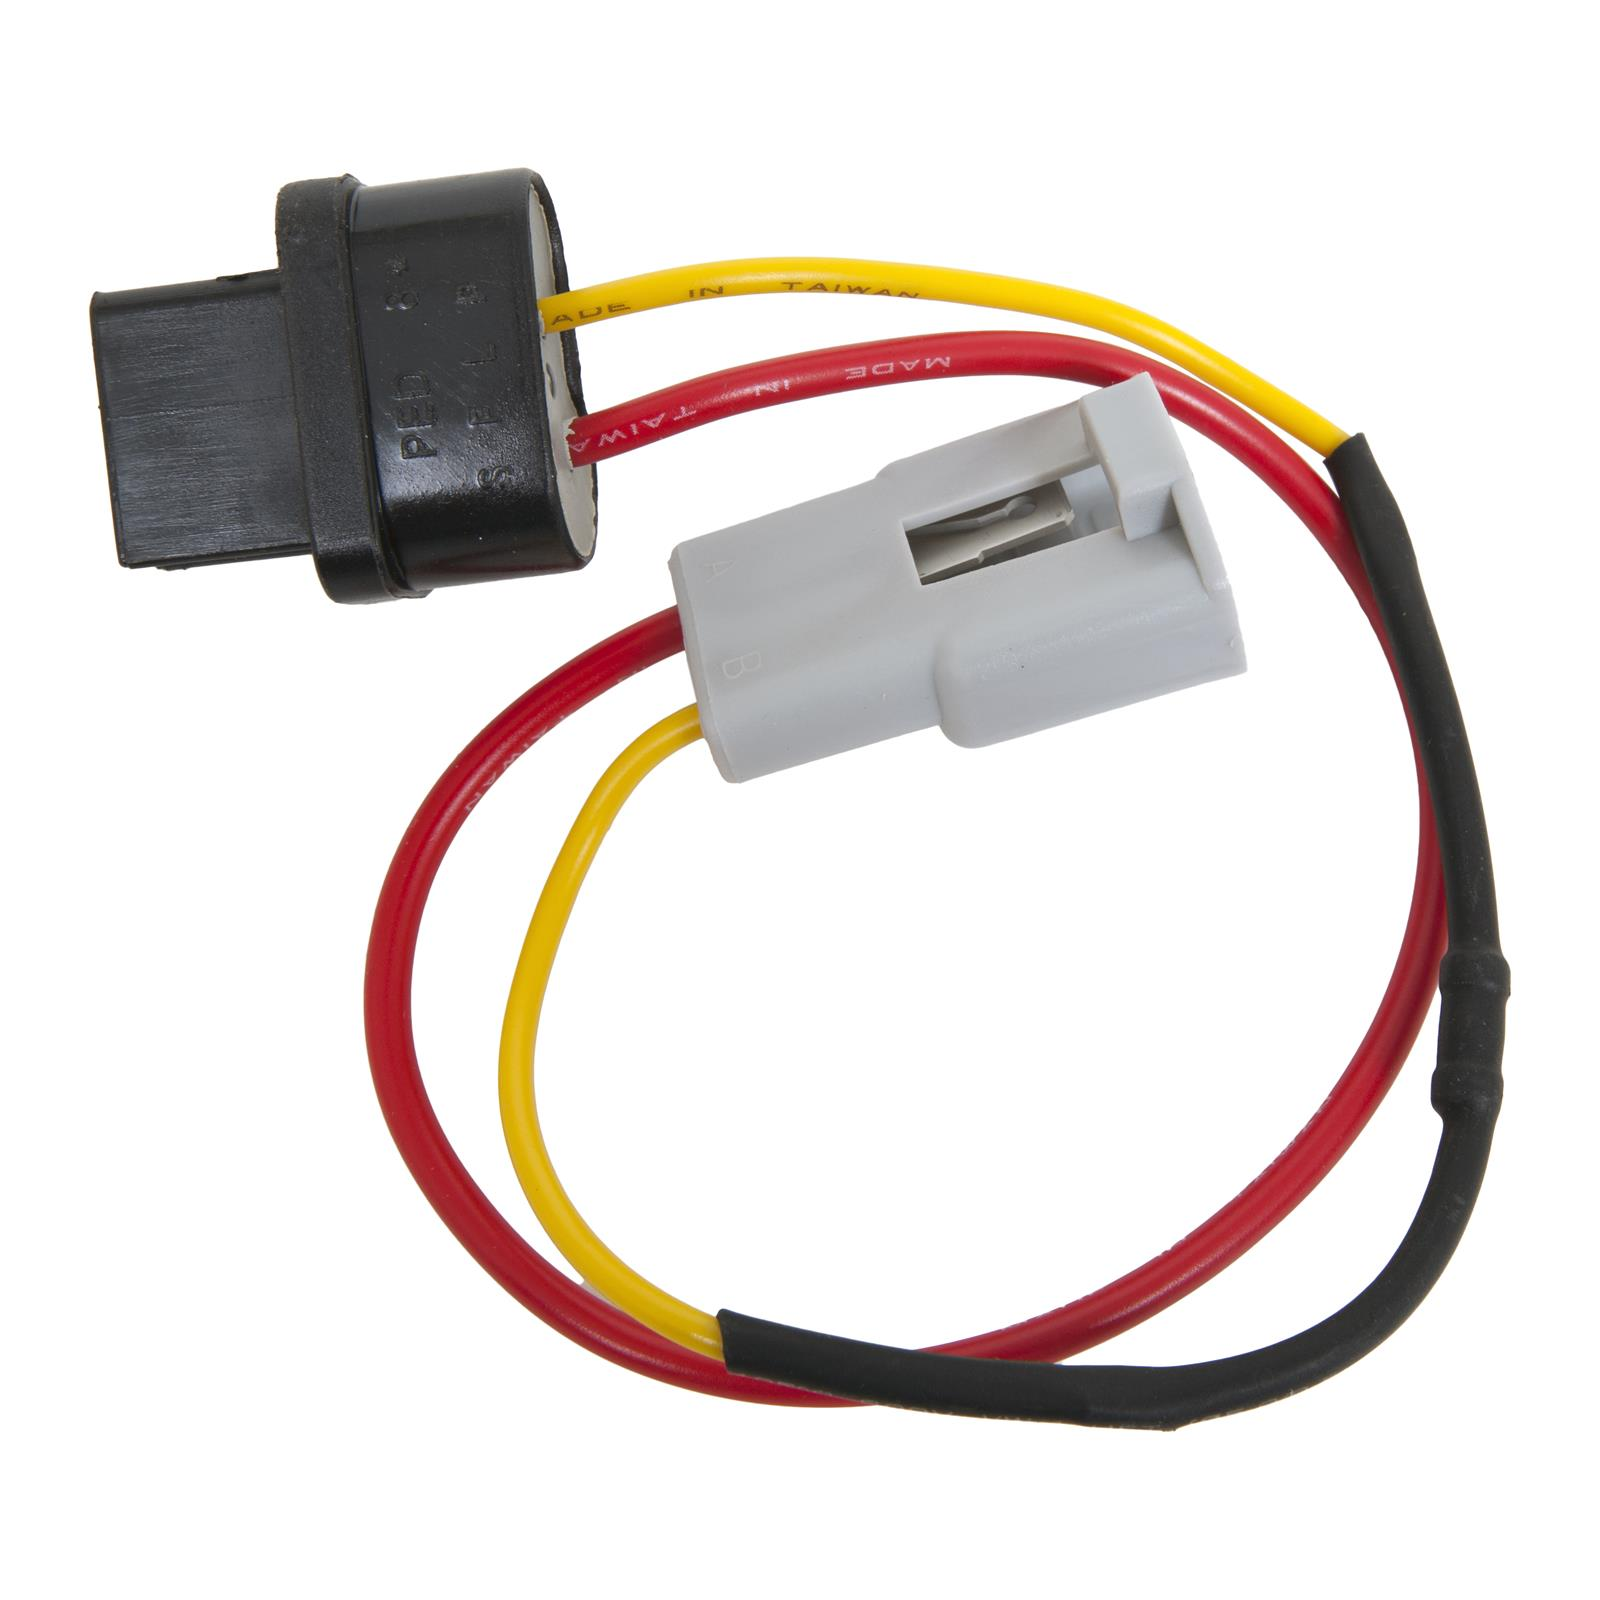 acdelco replacement wiring harness connectors pt2145 - free shipping on  orders over $49 at summit racing